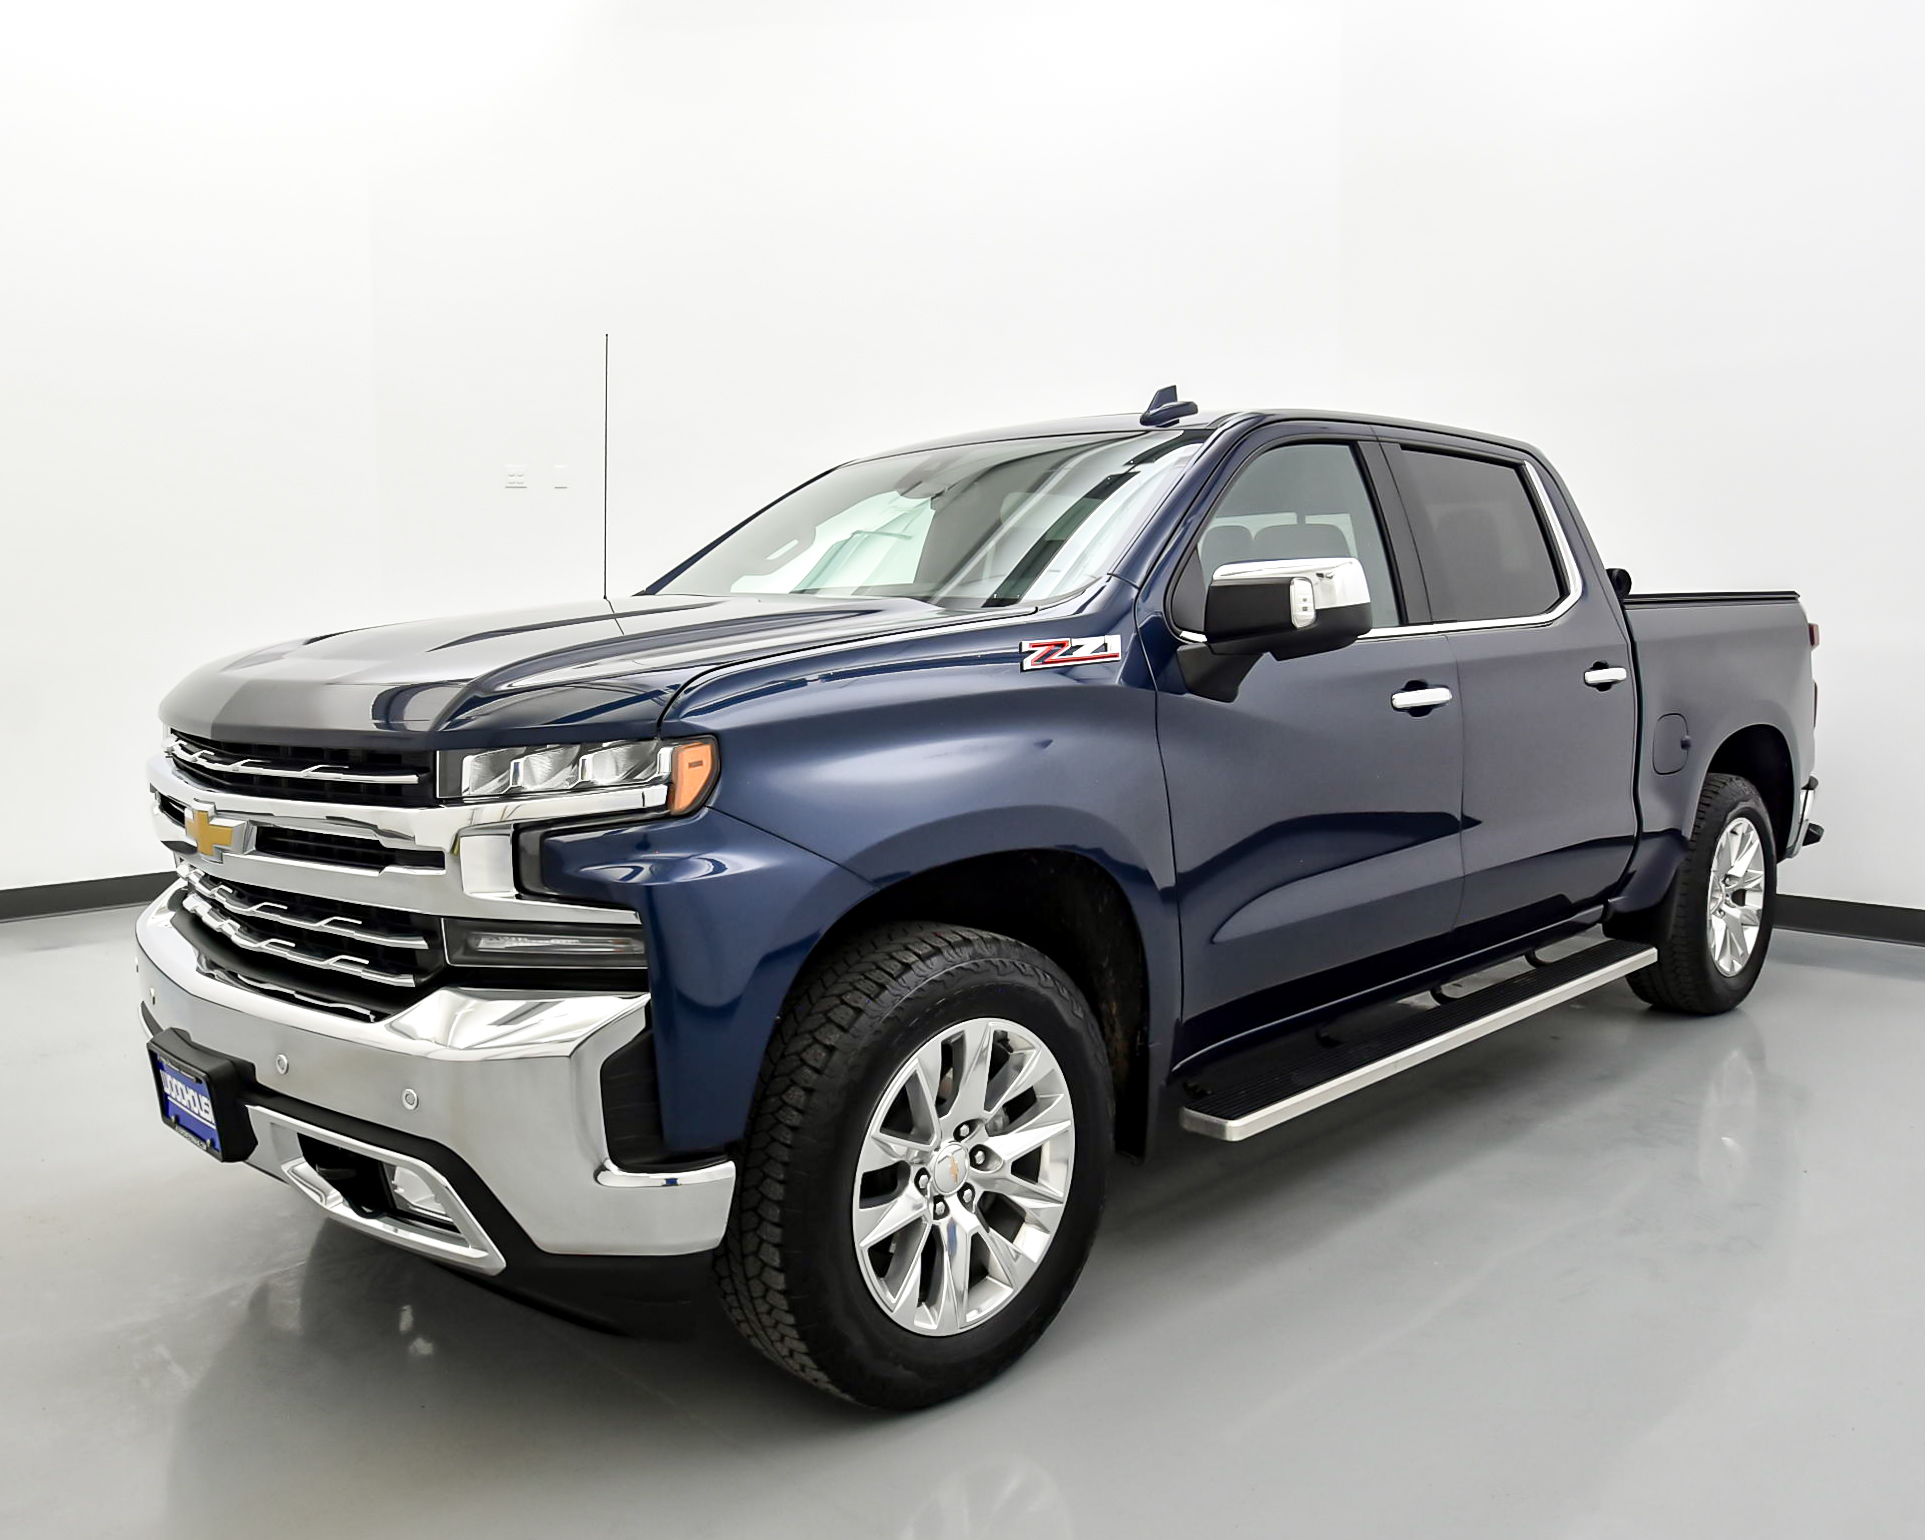 woodhouse used 2019 chevrolet silverado 1500 for sale chevy buick used 2019 chevrolet silverado 1500 for